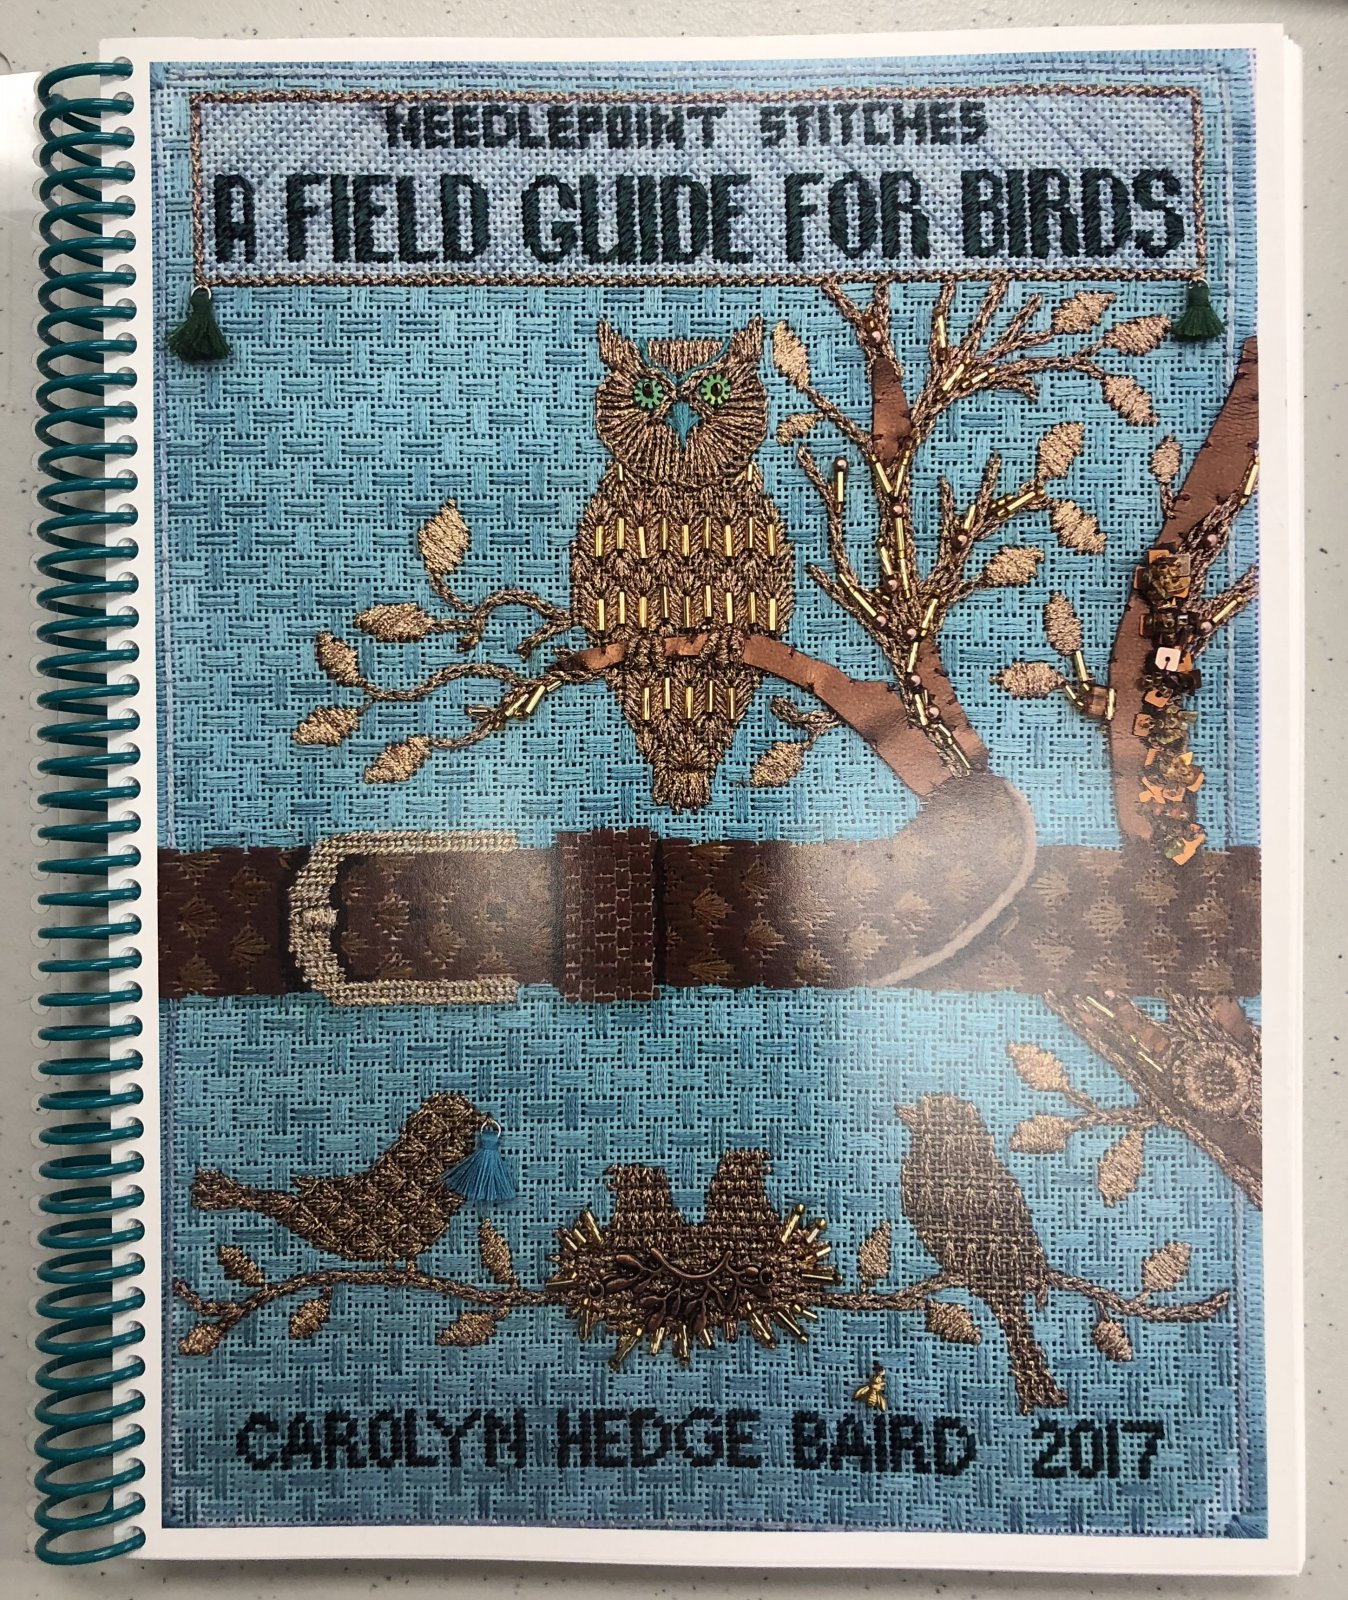 needlepoint stitches: a field guide for birds